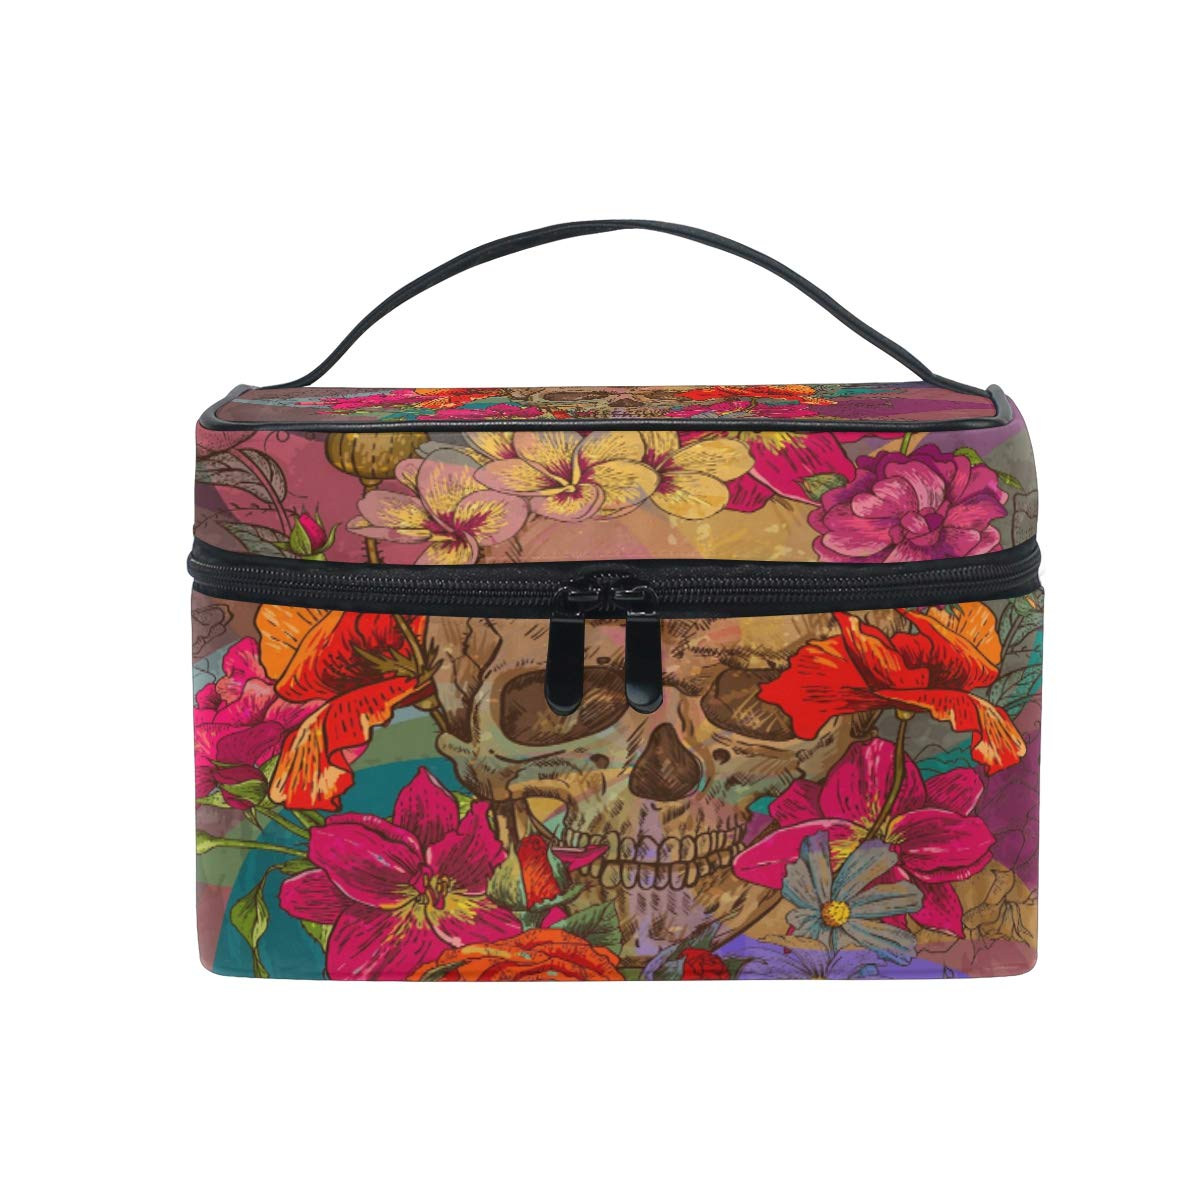 Travel Cosmetic Bag Skull Flower Toiletry Makeup Bag Pouch Tote Case Organizer Storage For Women Girls